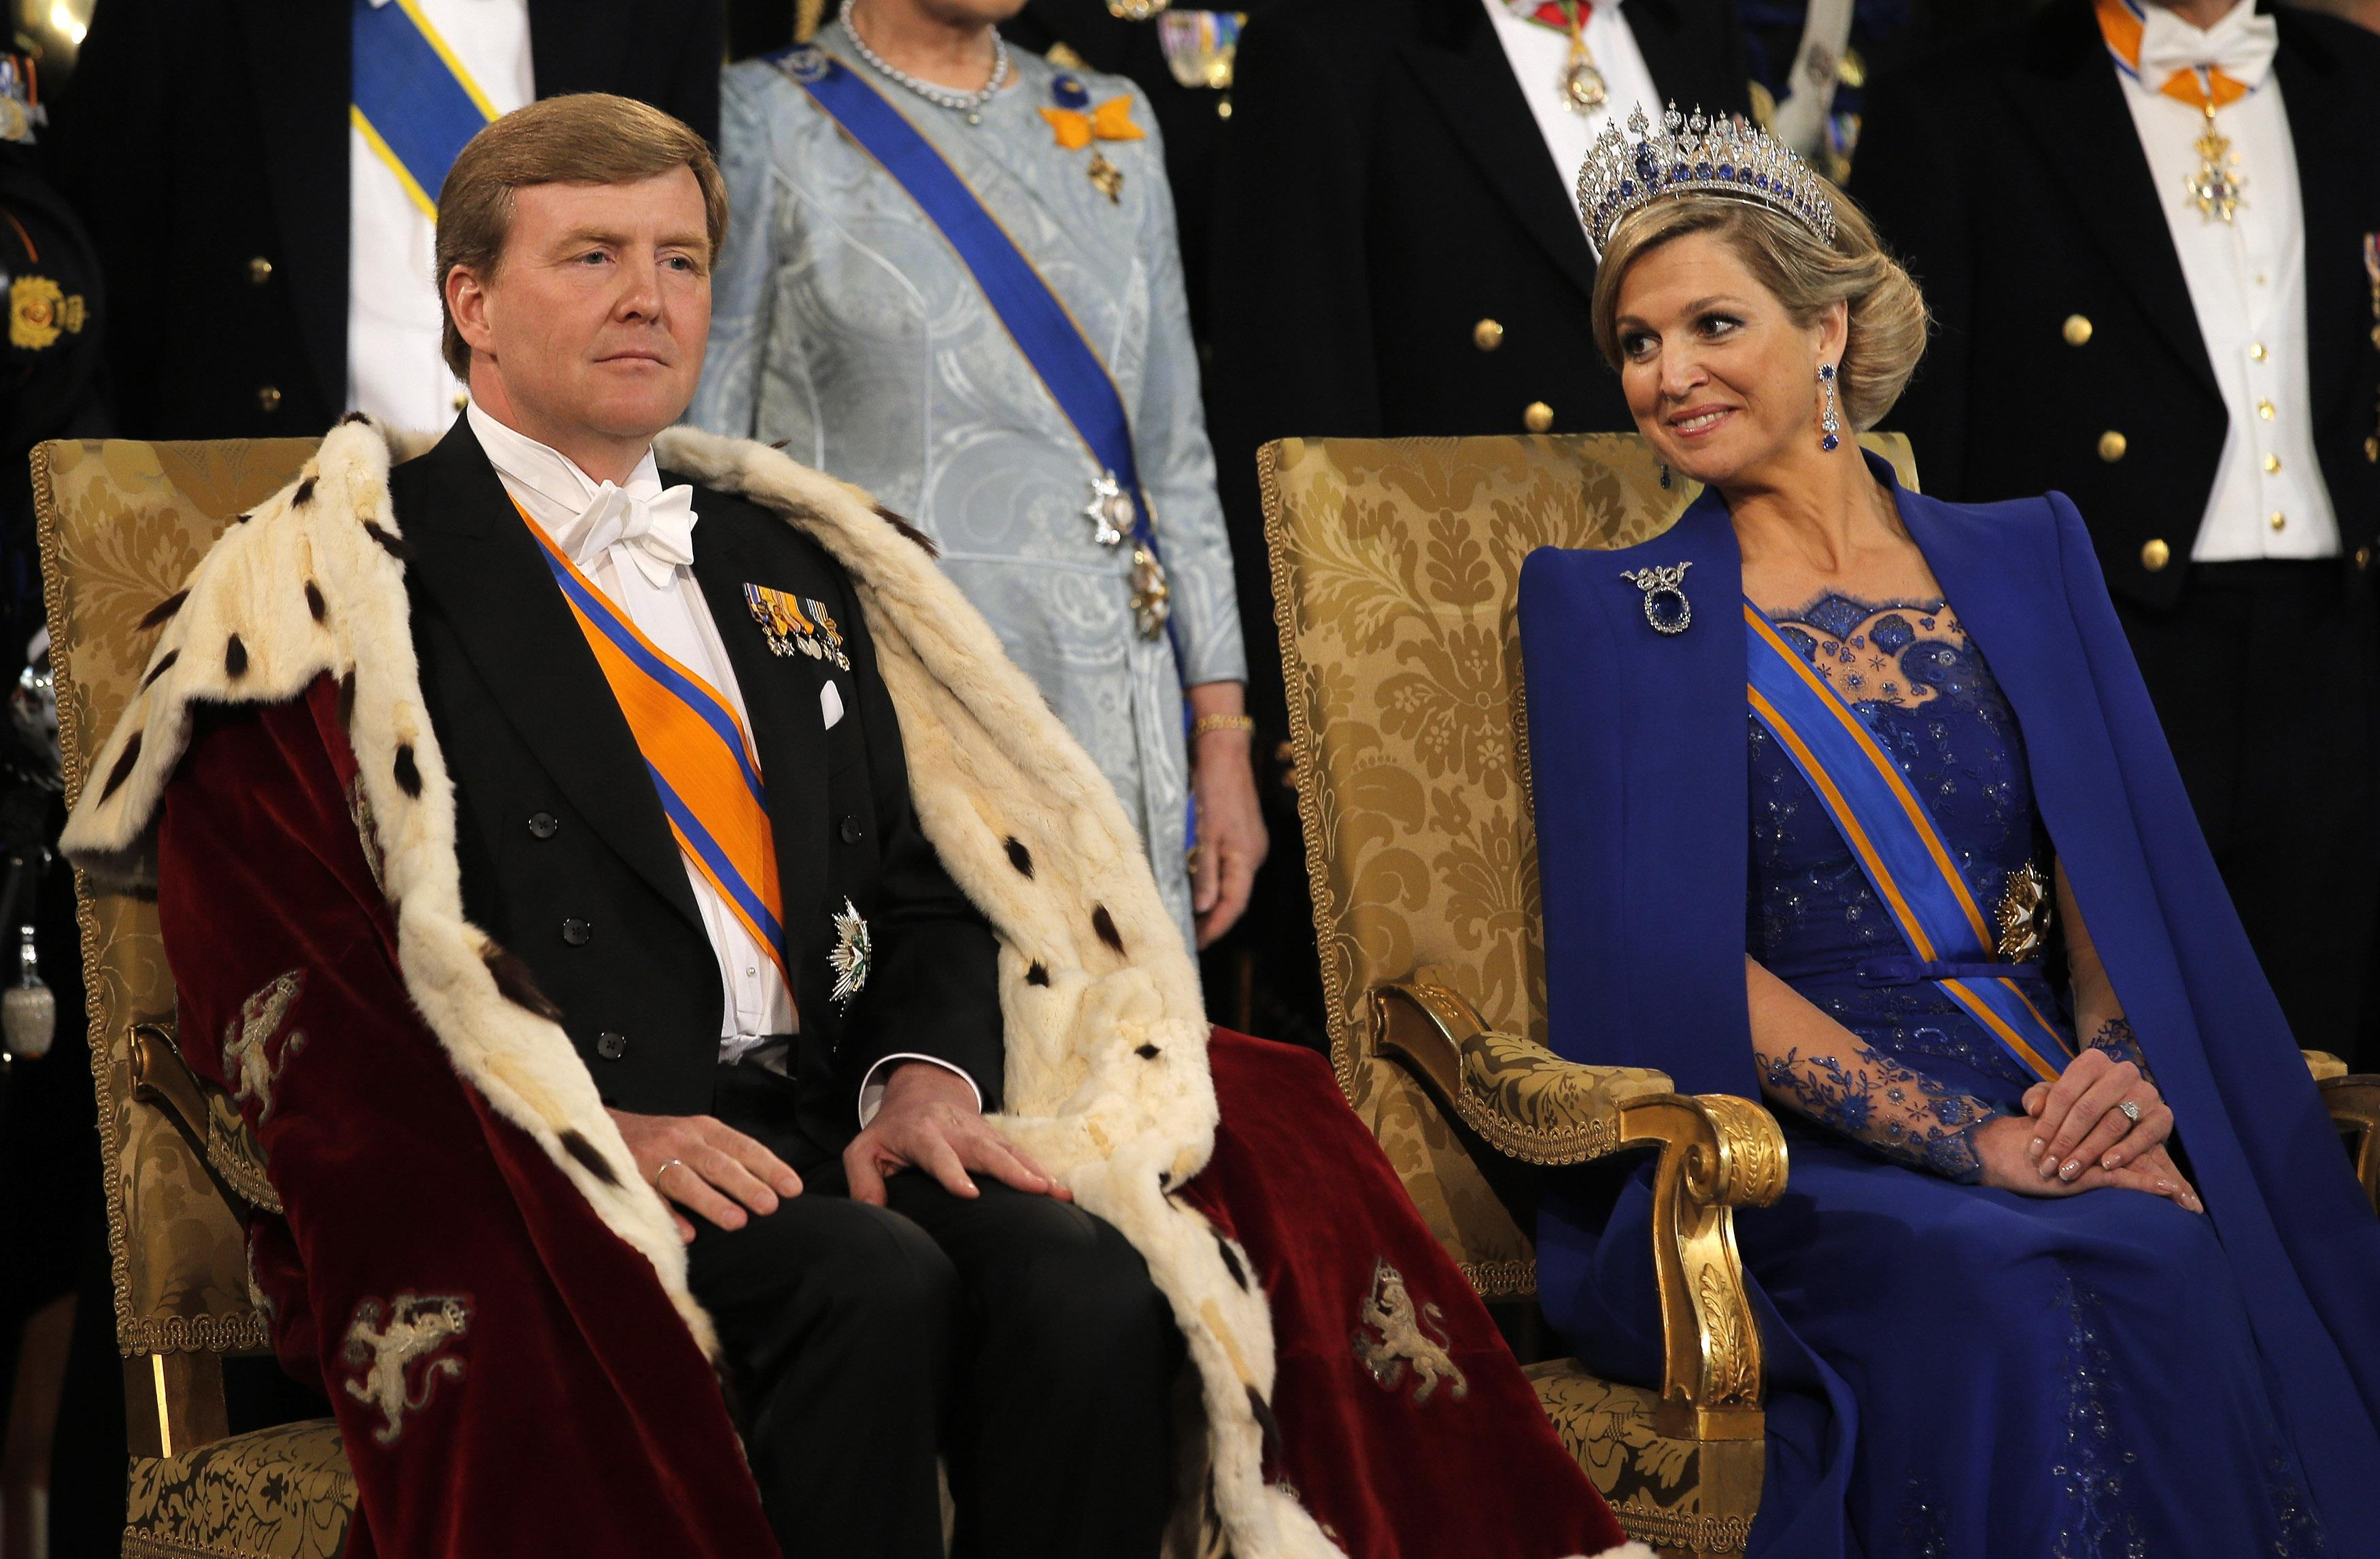 King Willem and Queen Maxima